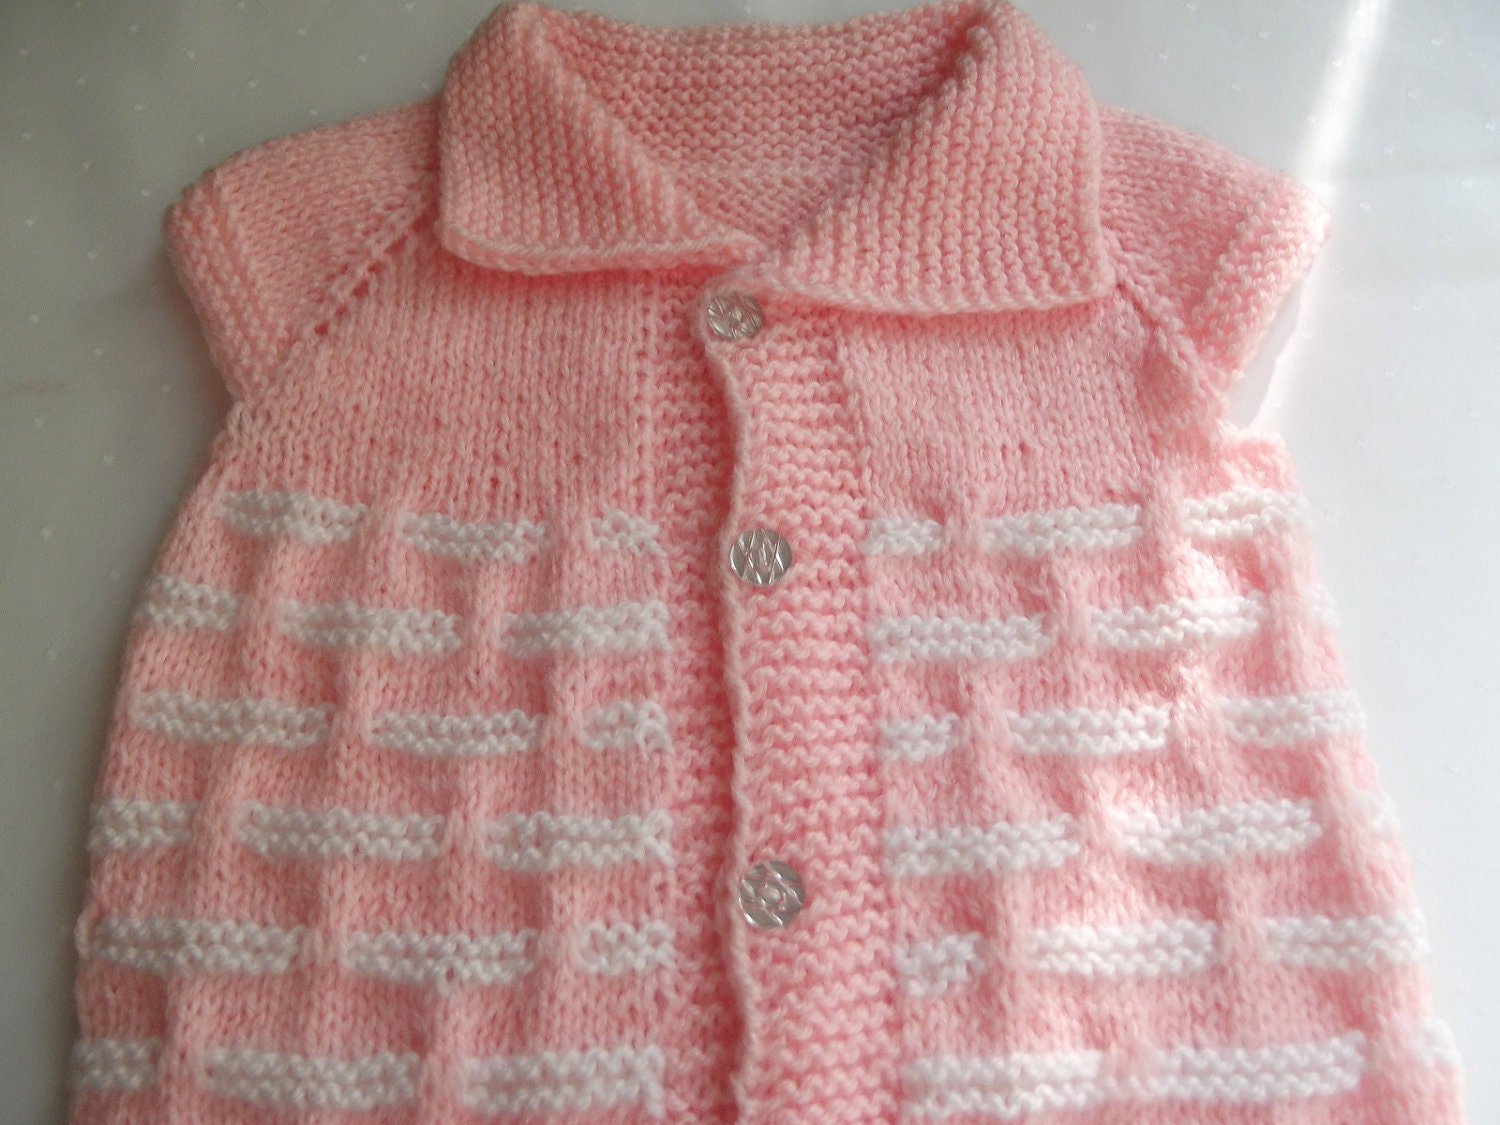 Knitted Baby Vest Pattern : Handmade Knitting Pattern...Knitting Baby Vest... by Vestberet